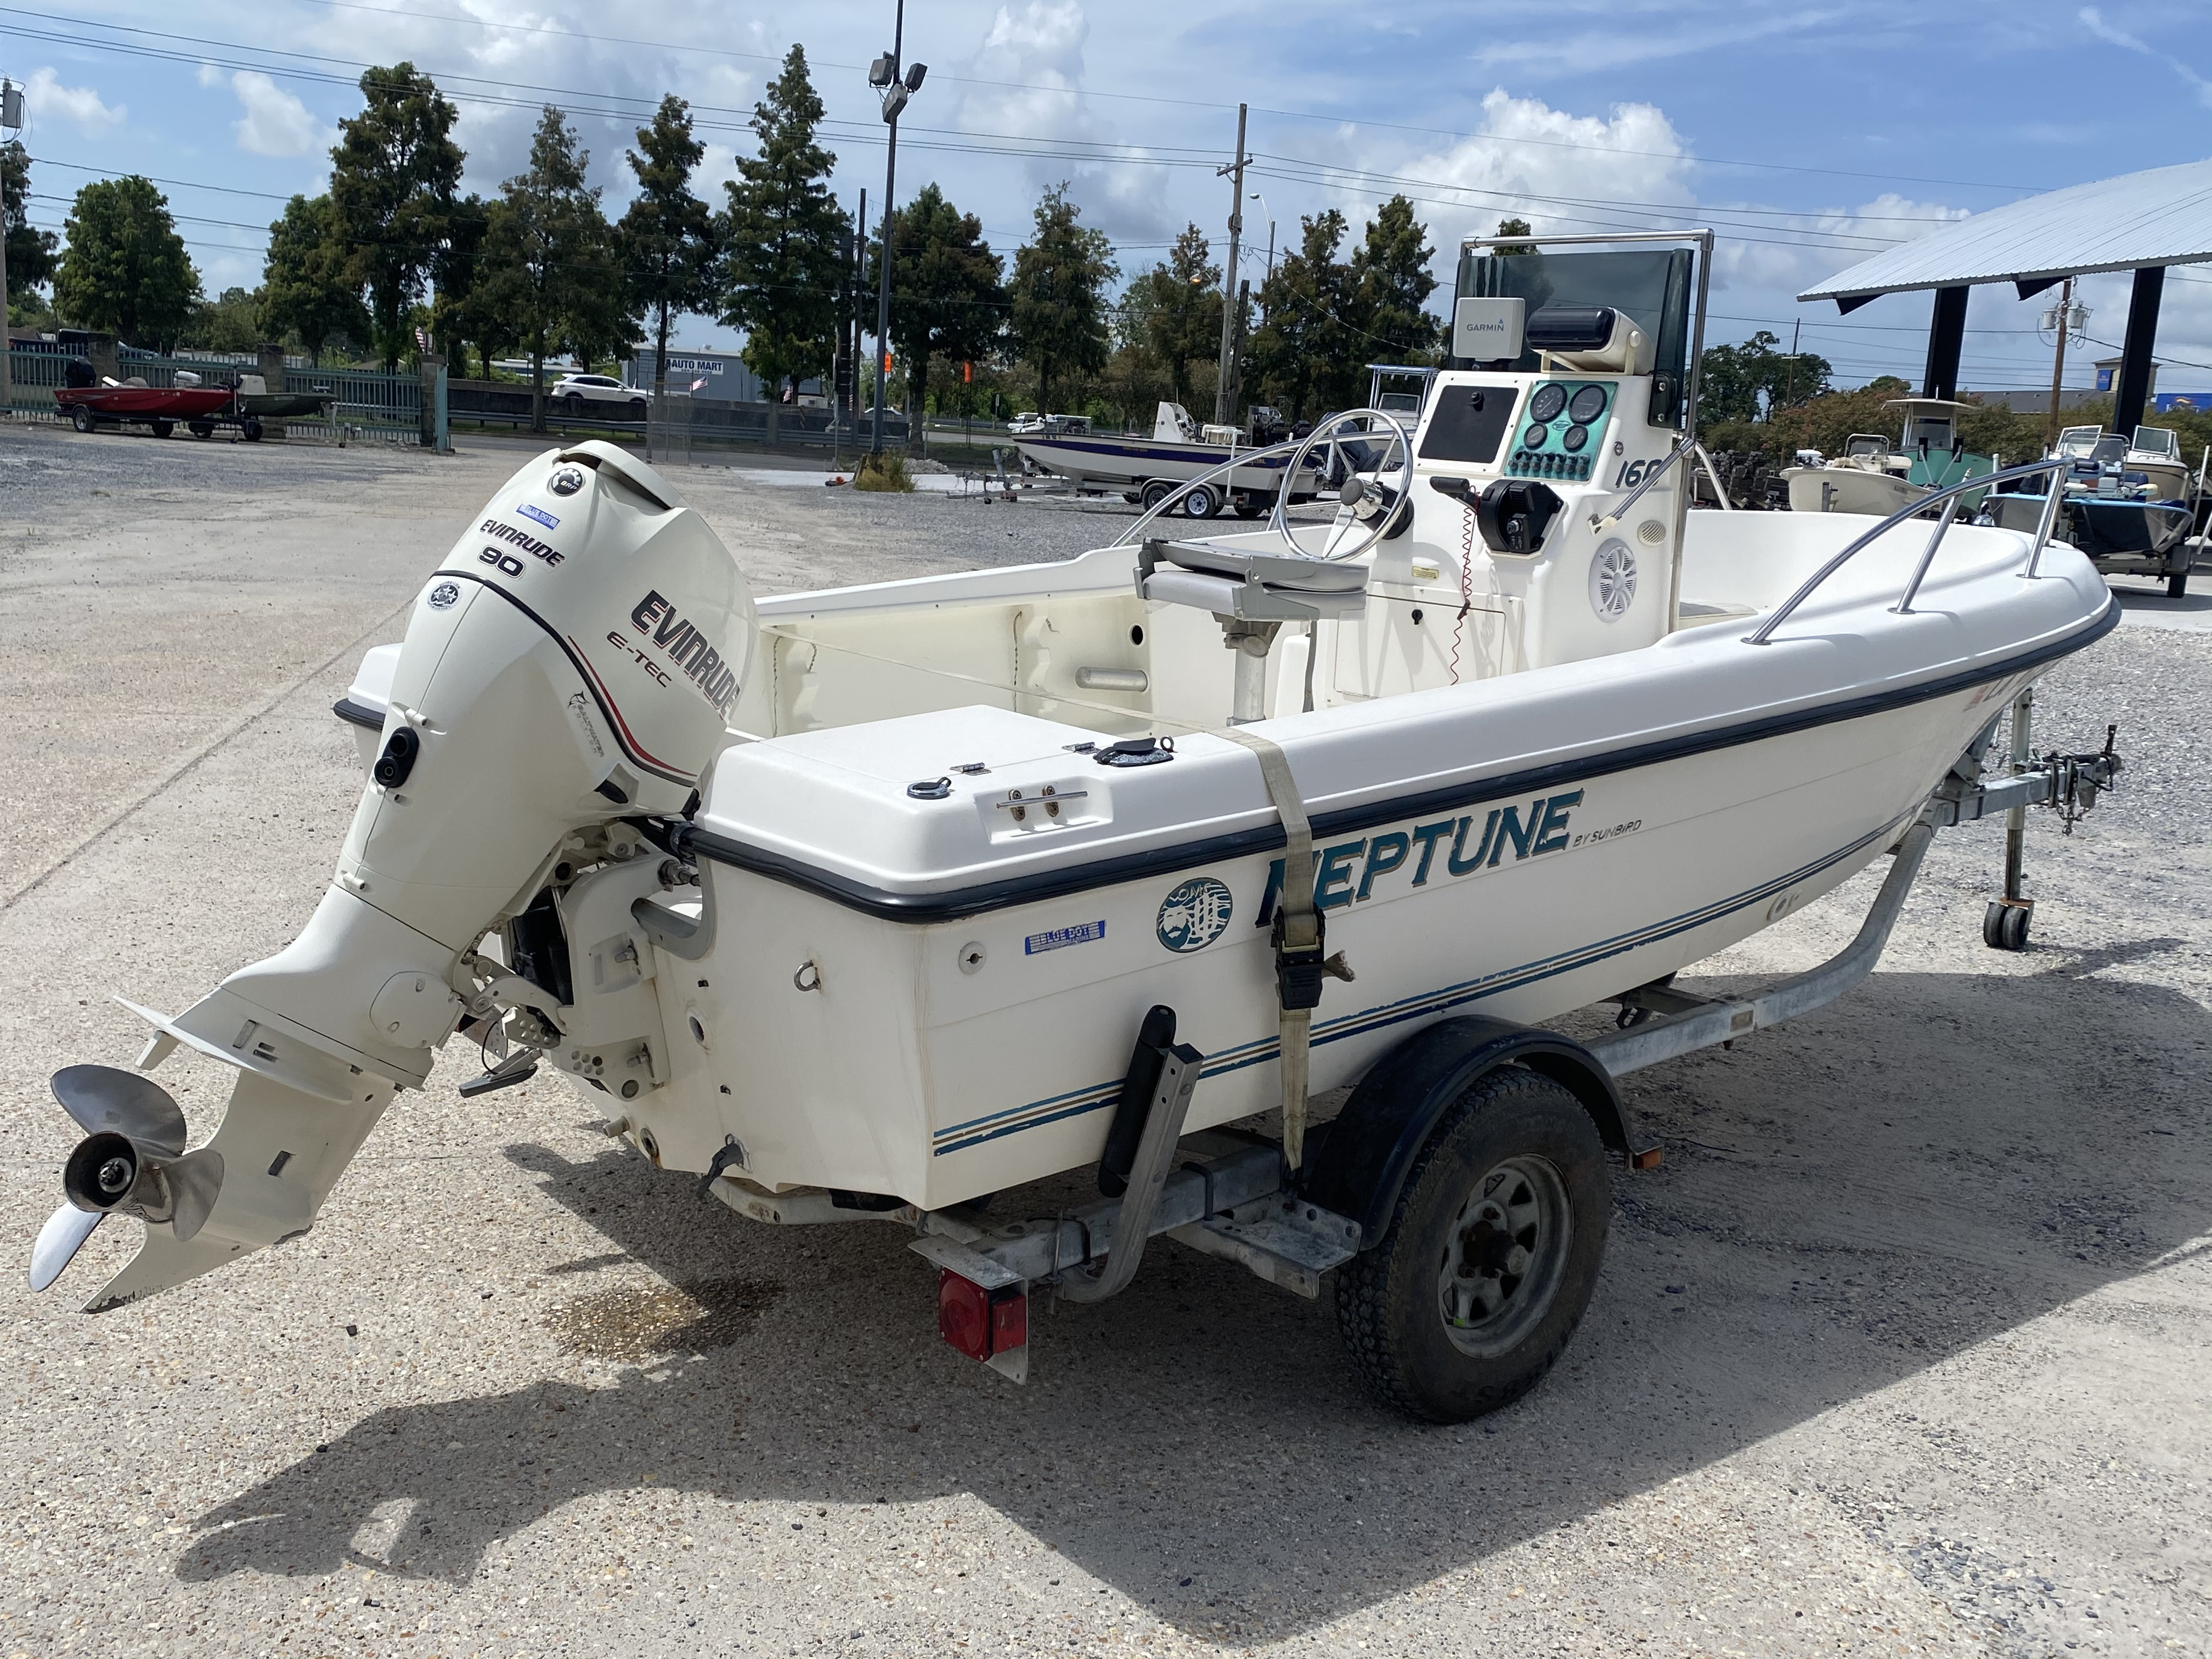 1996 Sunbird boat for sale, model of the boat is Neptune 160 & Image # 11 of 14